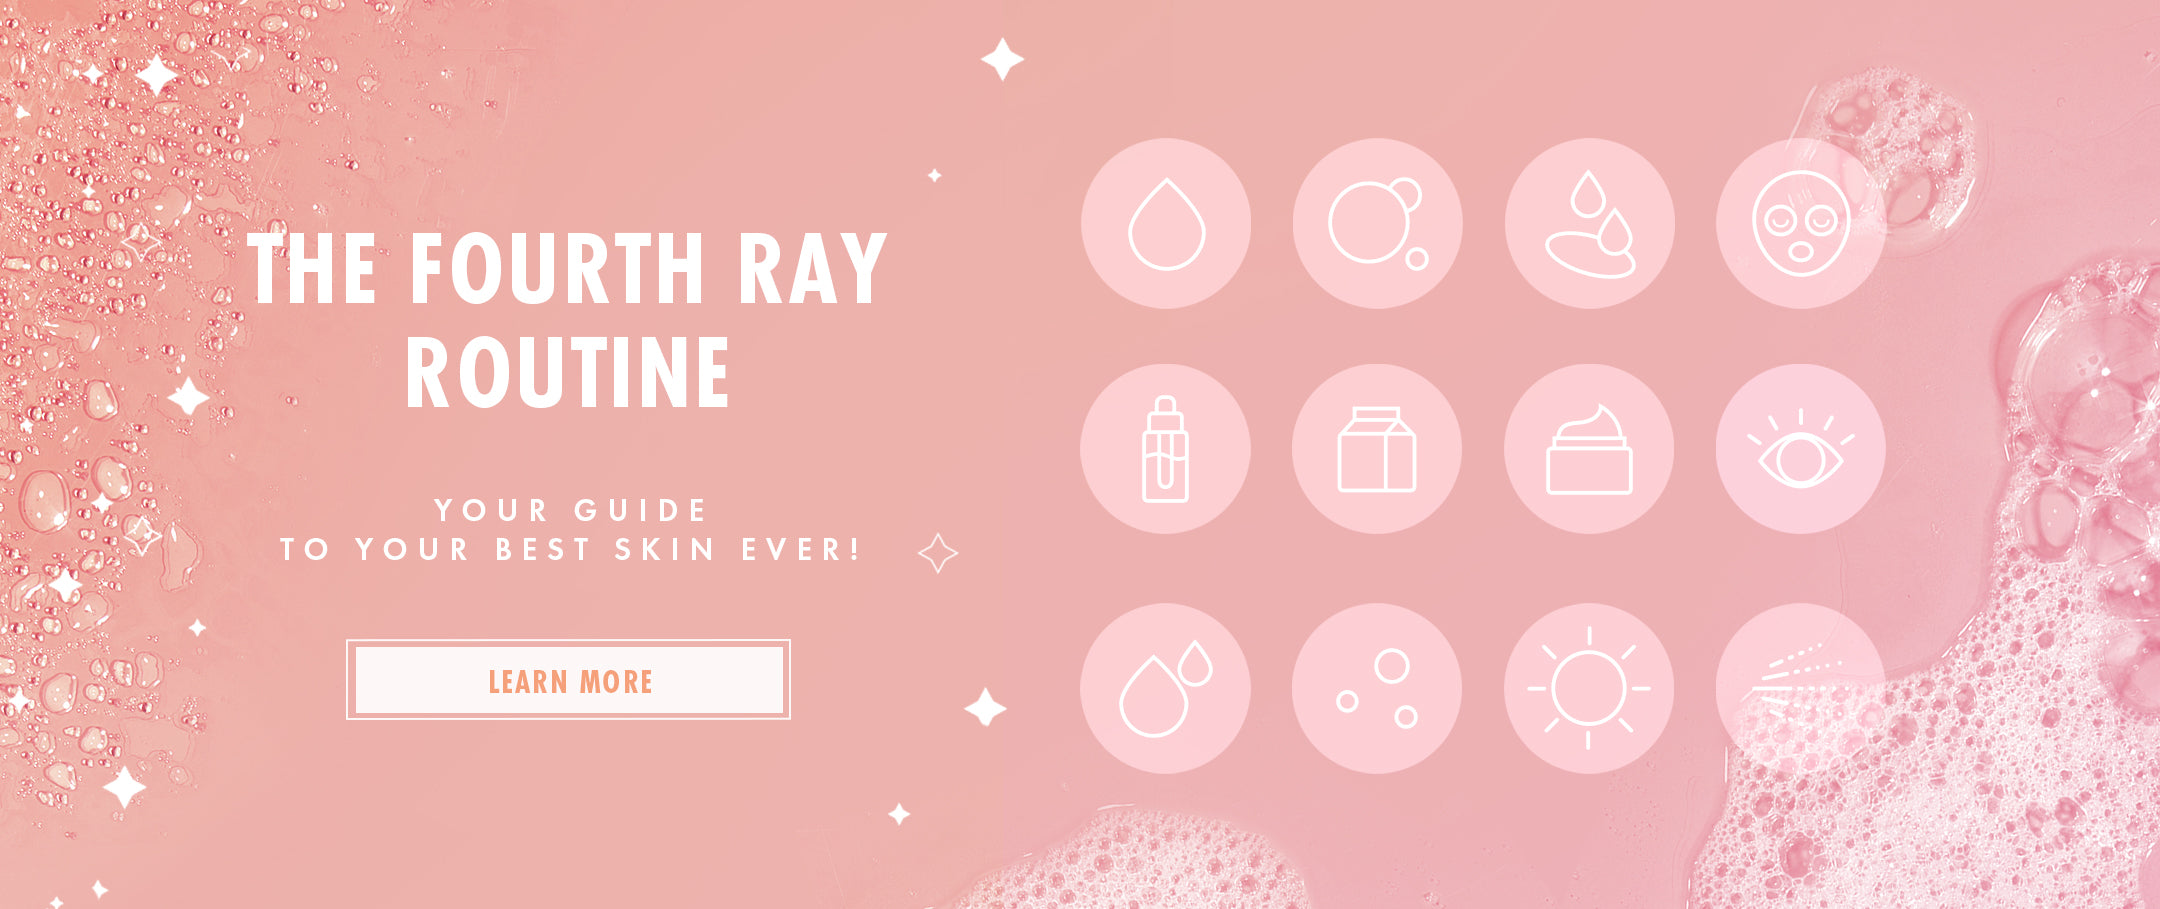 The Fourth Ray Routine - Your guide to your best skin ever!